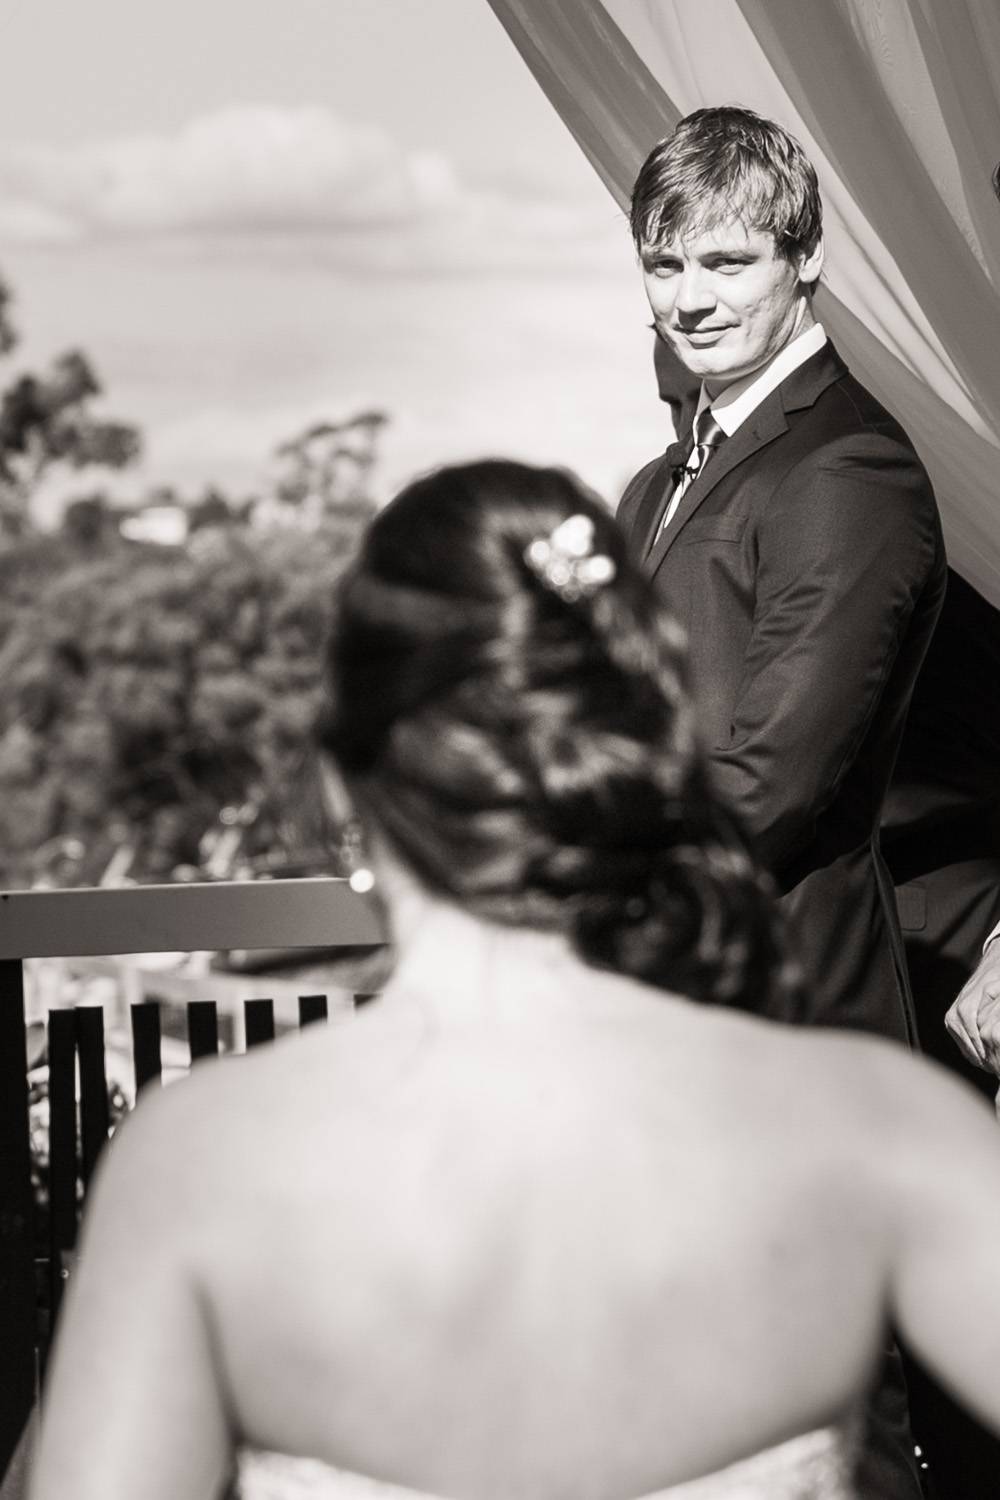 wedding-photographer-brisbane-36.jpg